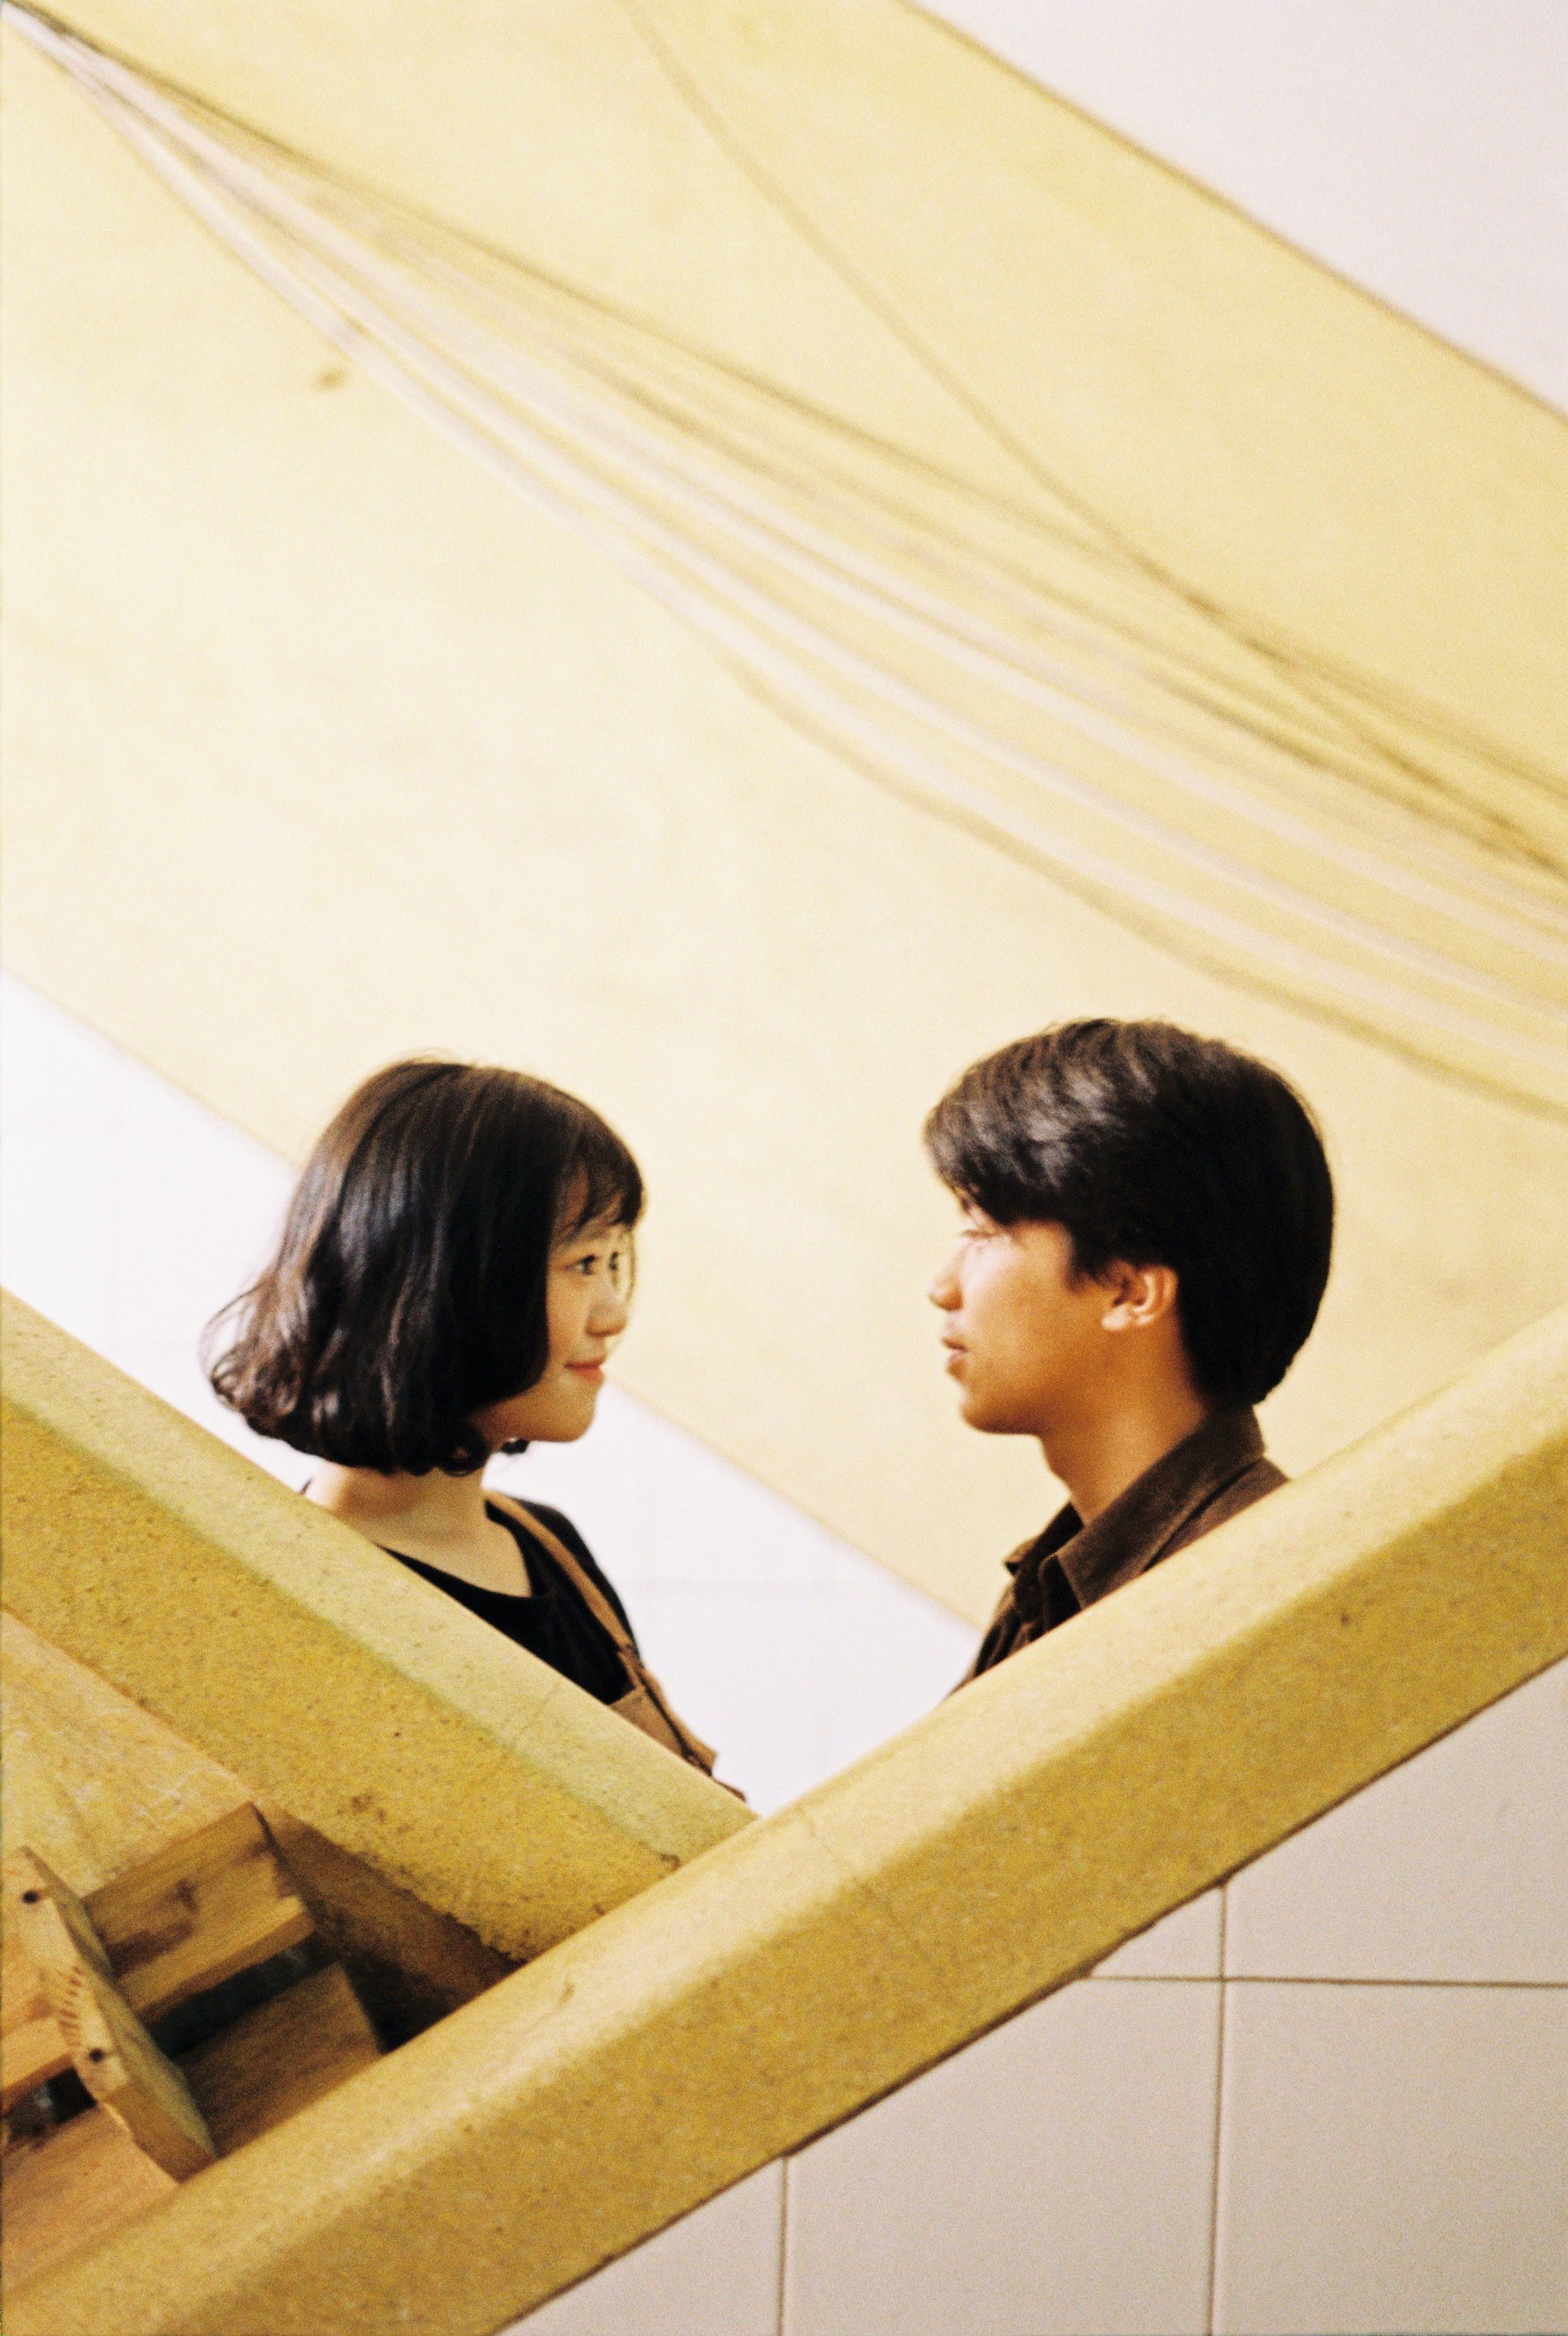 Woman And Man Facing Each Other Inside Room